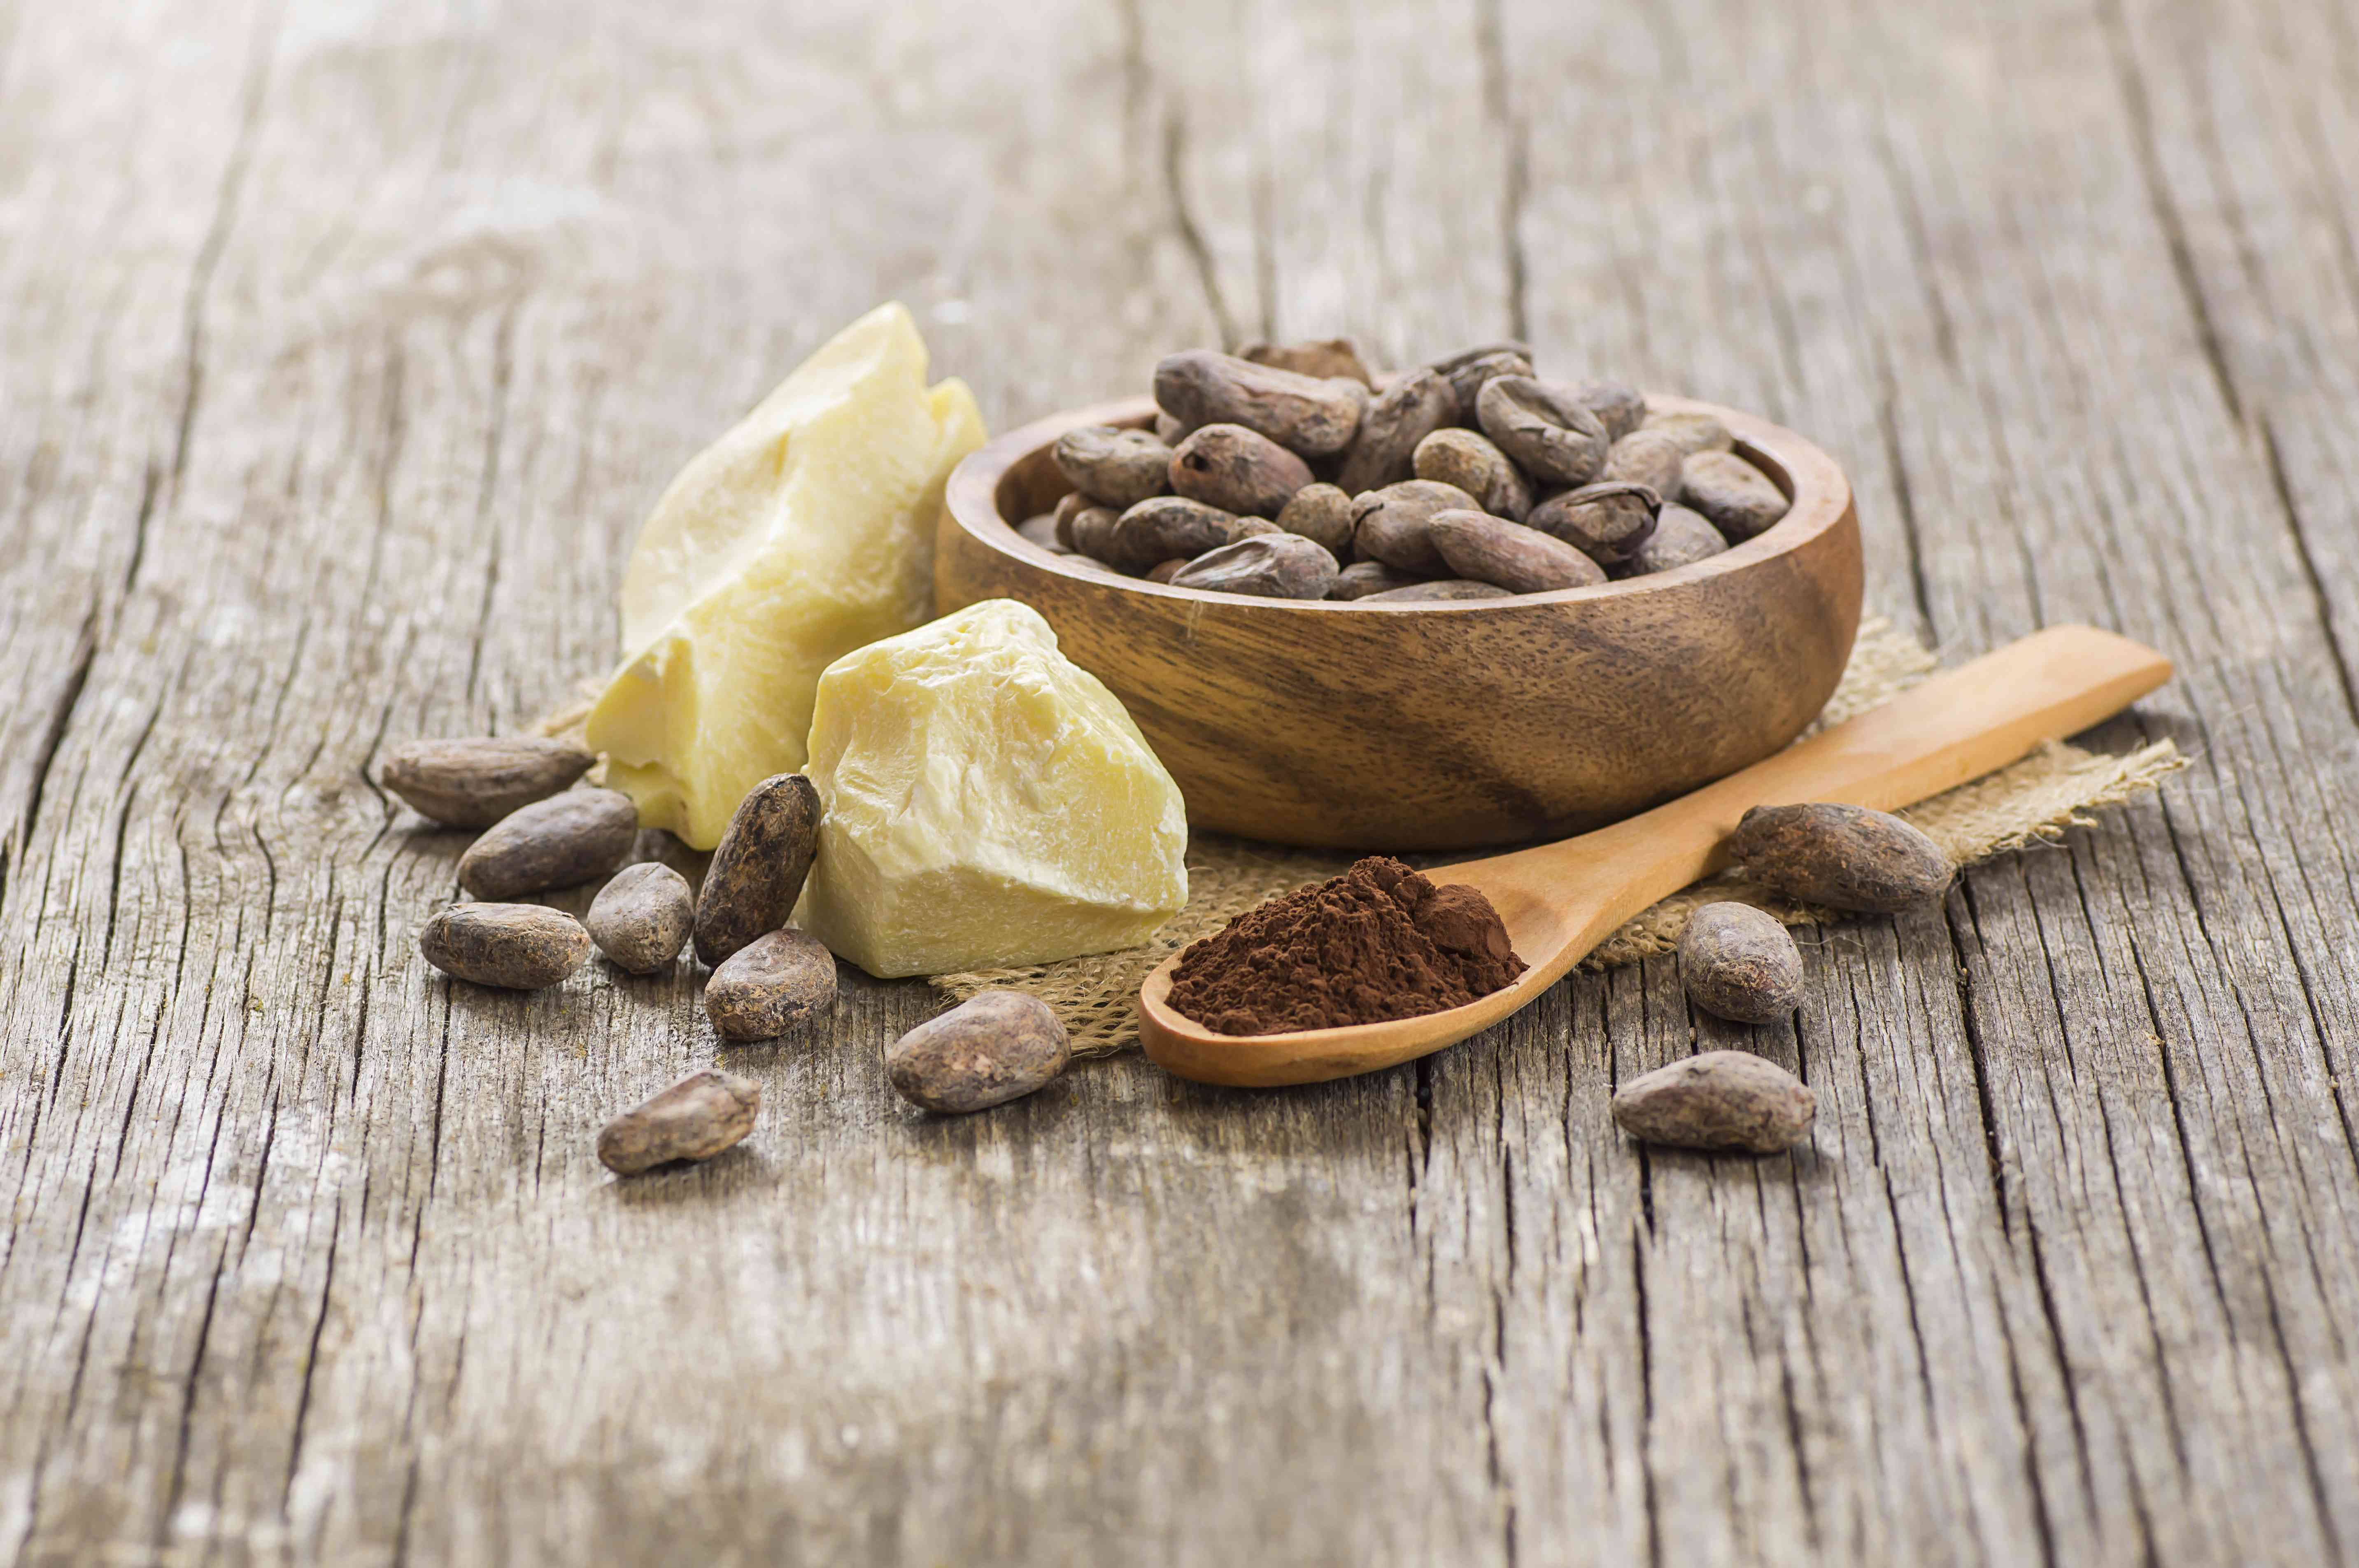 Cocoa butter or Cocoa bean solid oil with cacao powder in spoon and raw cocoa beans in wooden bowl on rustic backdrop.